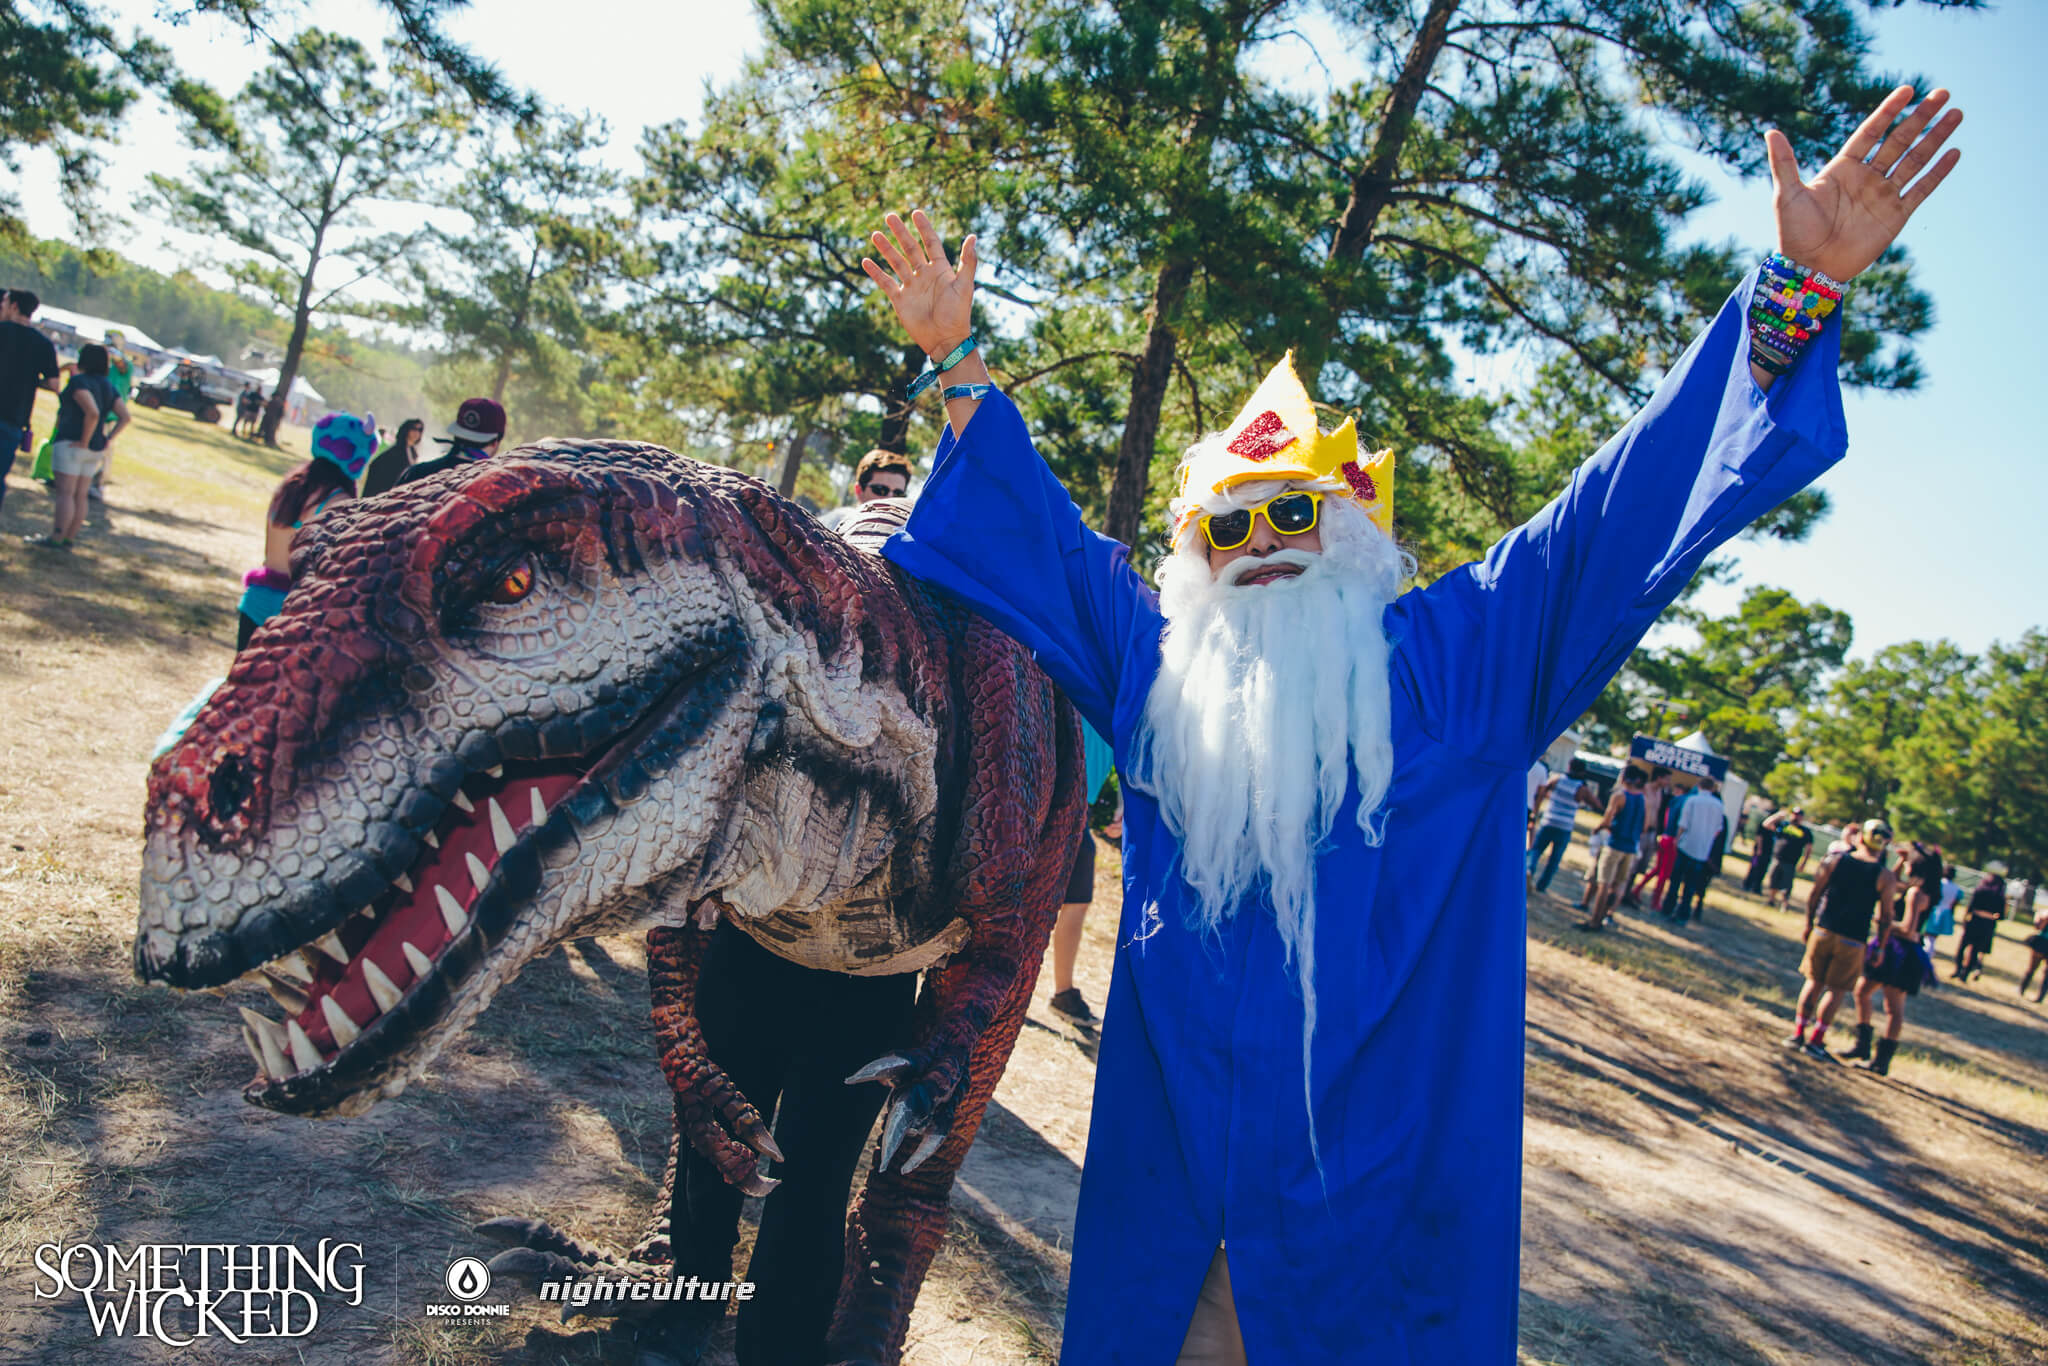 wizard and dinosaur in costume at something wicked